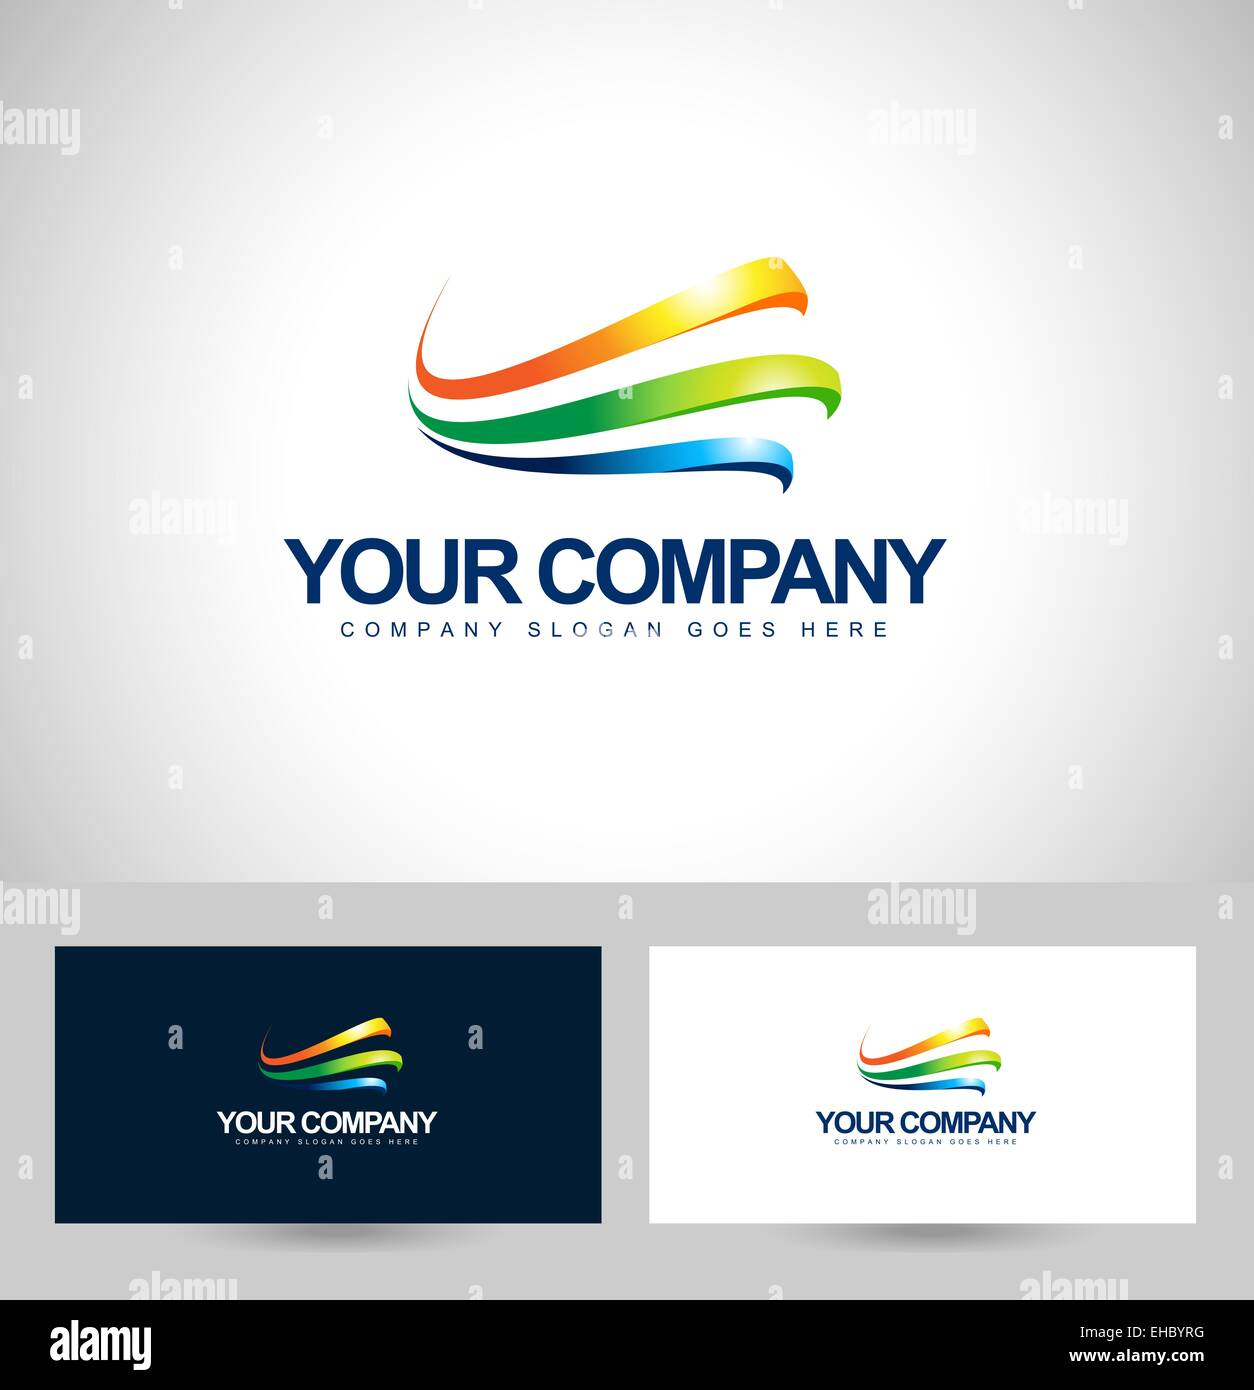 Business logo design colorful swashes vector creative corporate business logo design colorful swashes vector creative corporate logo with business card template cheaphphosting Image collections